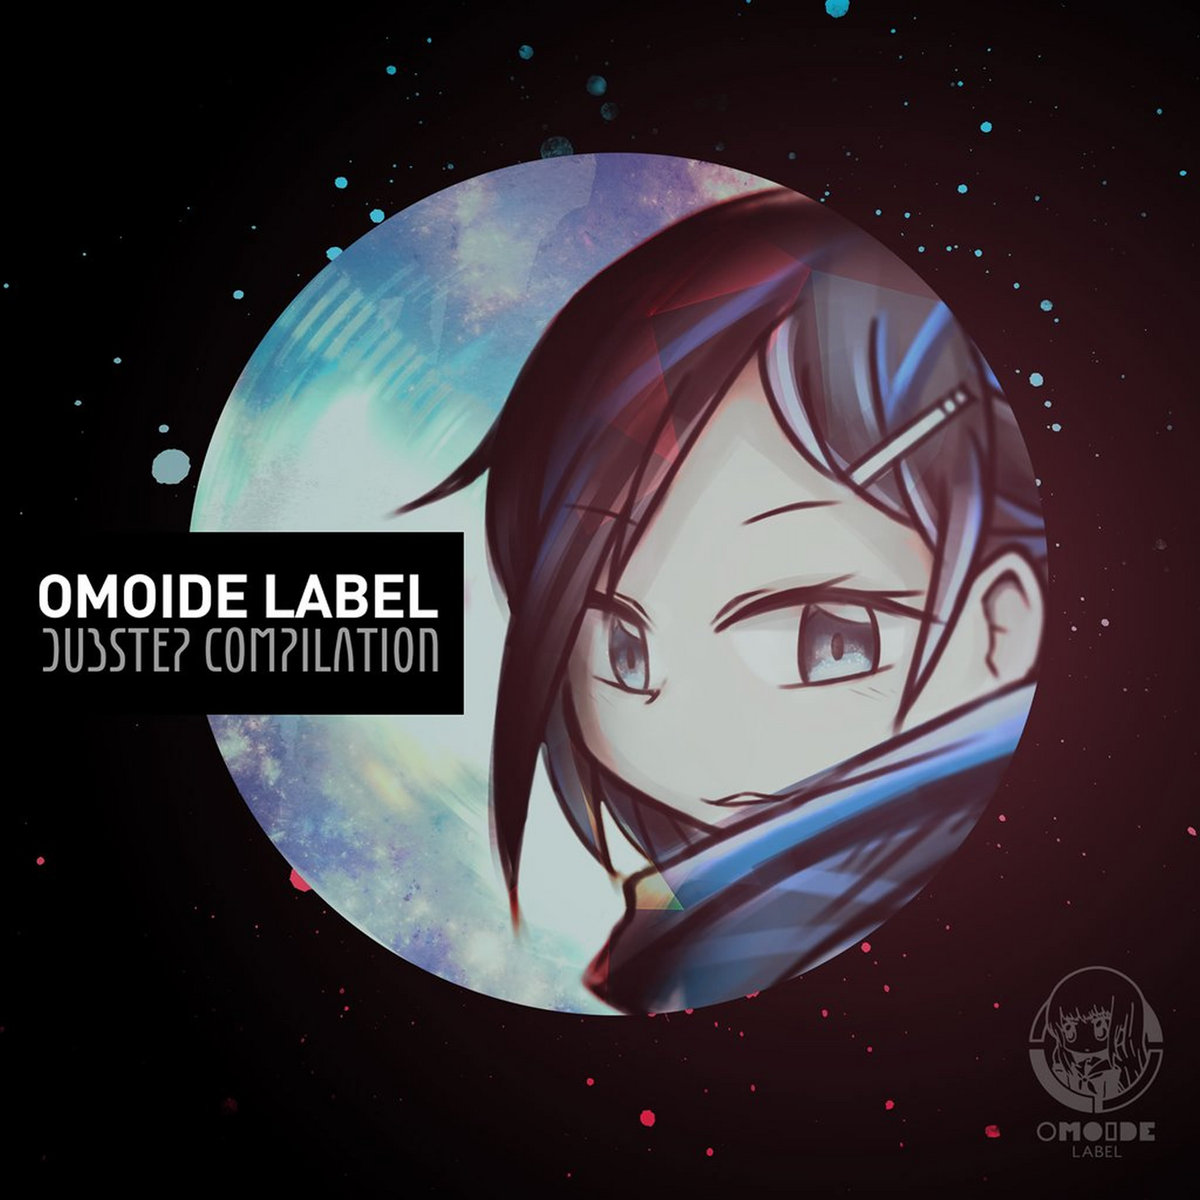 Gta 5 monroe customization online dating 5